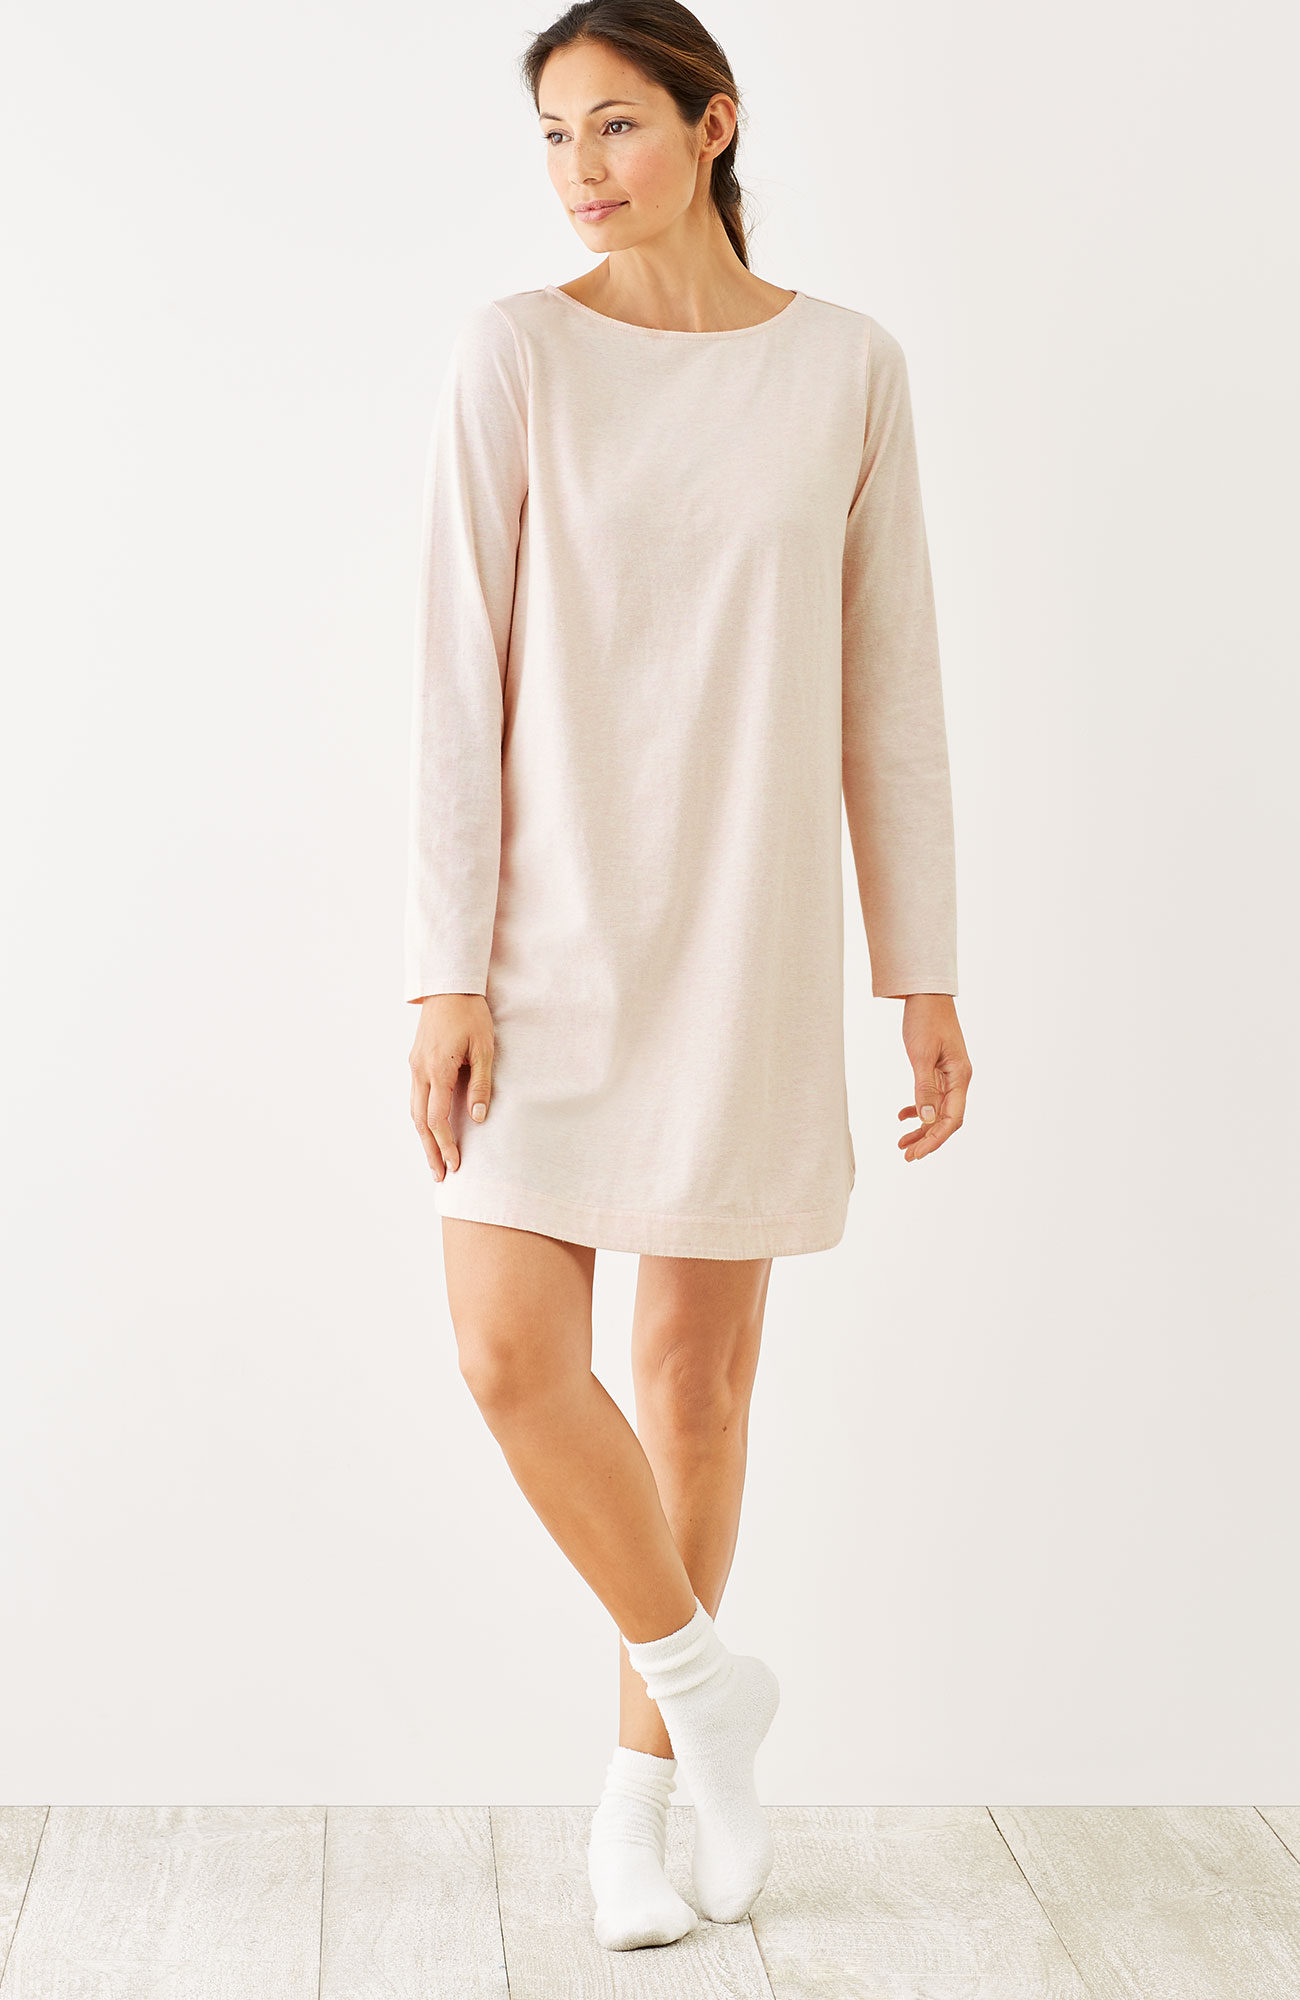 Pure Jill Sleep brushed nightshirt